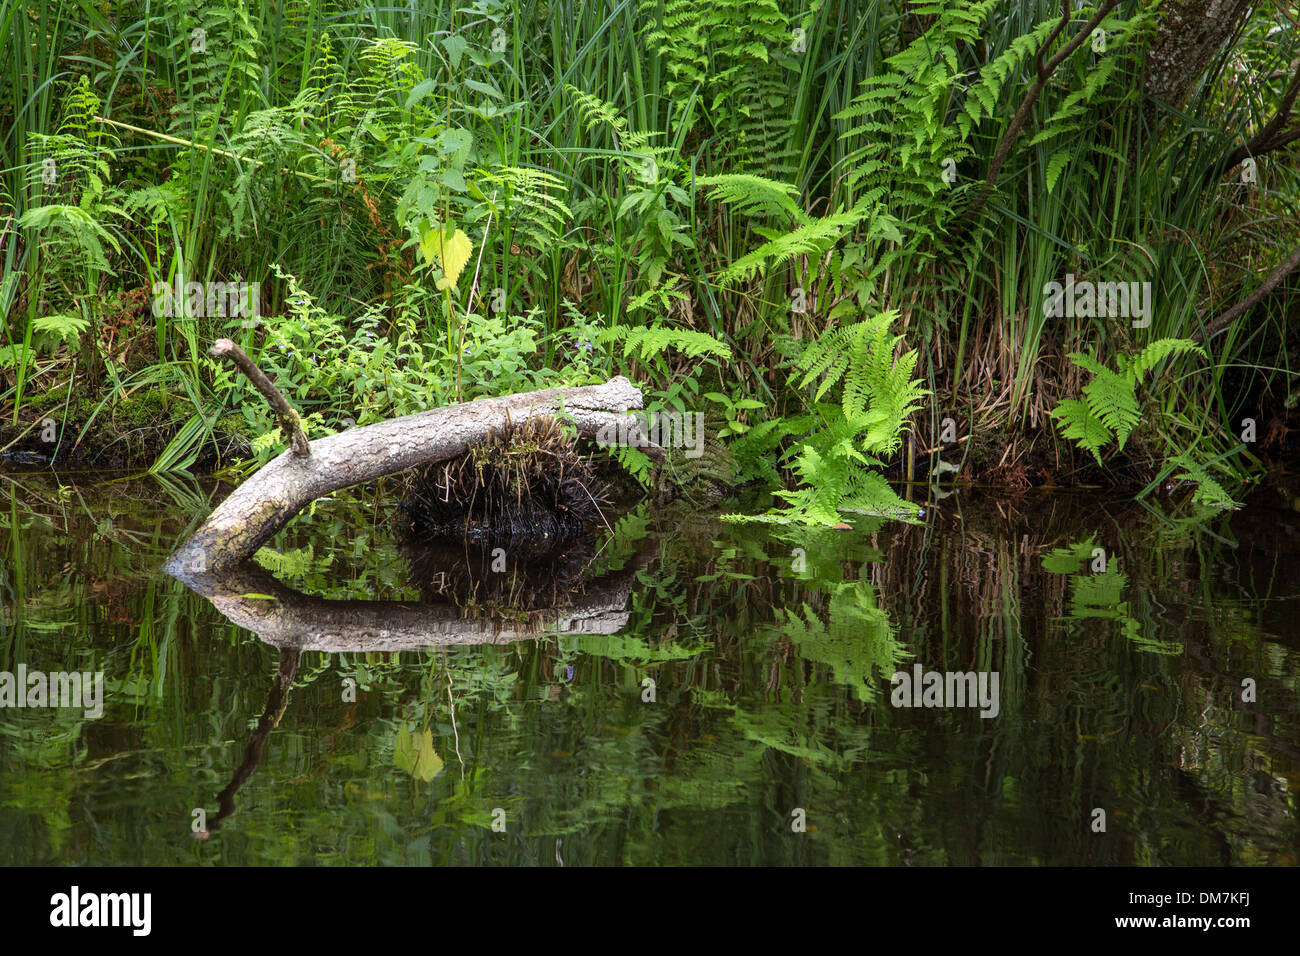 ONOCLEA SENSIBILIS, SENSITIVE FERN OR BEAD FERN, AQUATIC PLANT ON THE BANKS OF THE CONIE, AN UNTAMED RIVER FED BY THE WATER FROM A SPRING DISCHARGED FROM THE PHREATIC TABLE OF THE BEAUCE, MARBOUE, EURE-ET-LOIR (28), FRANCE - Stock Image